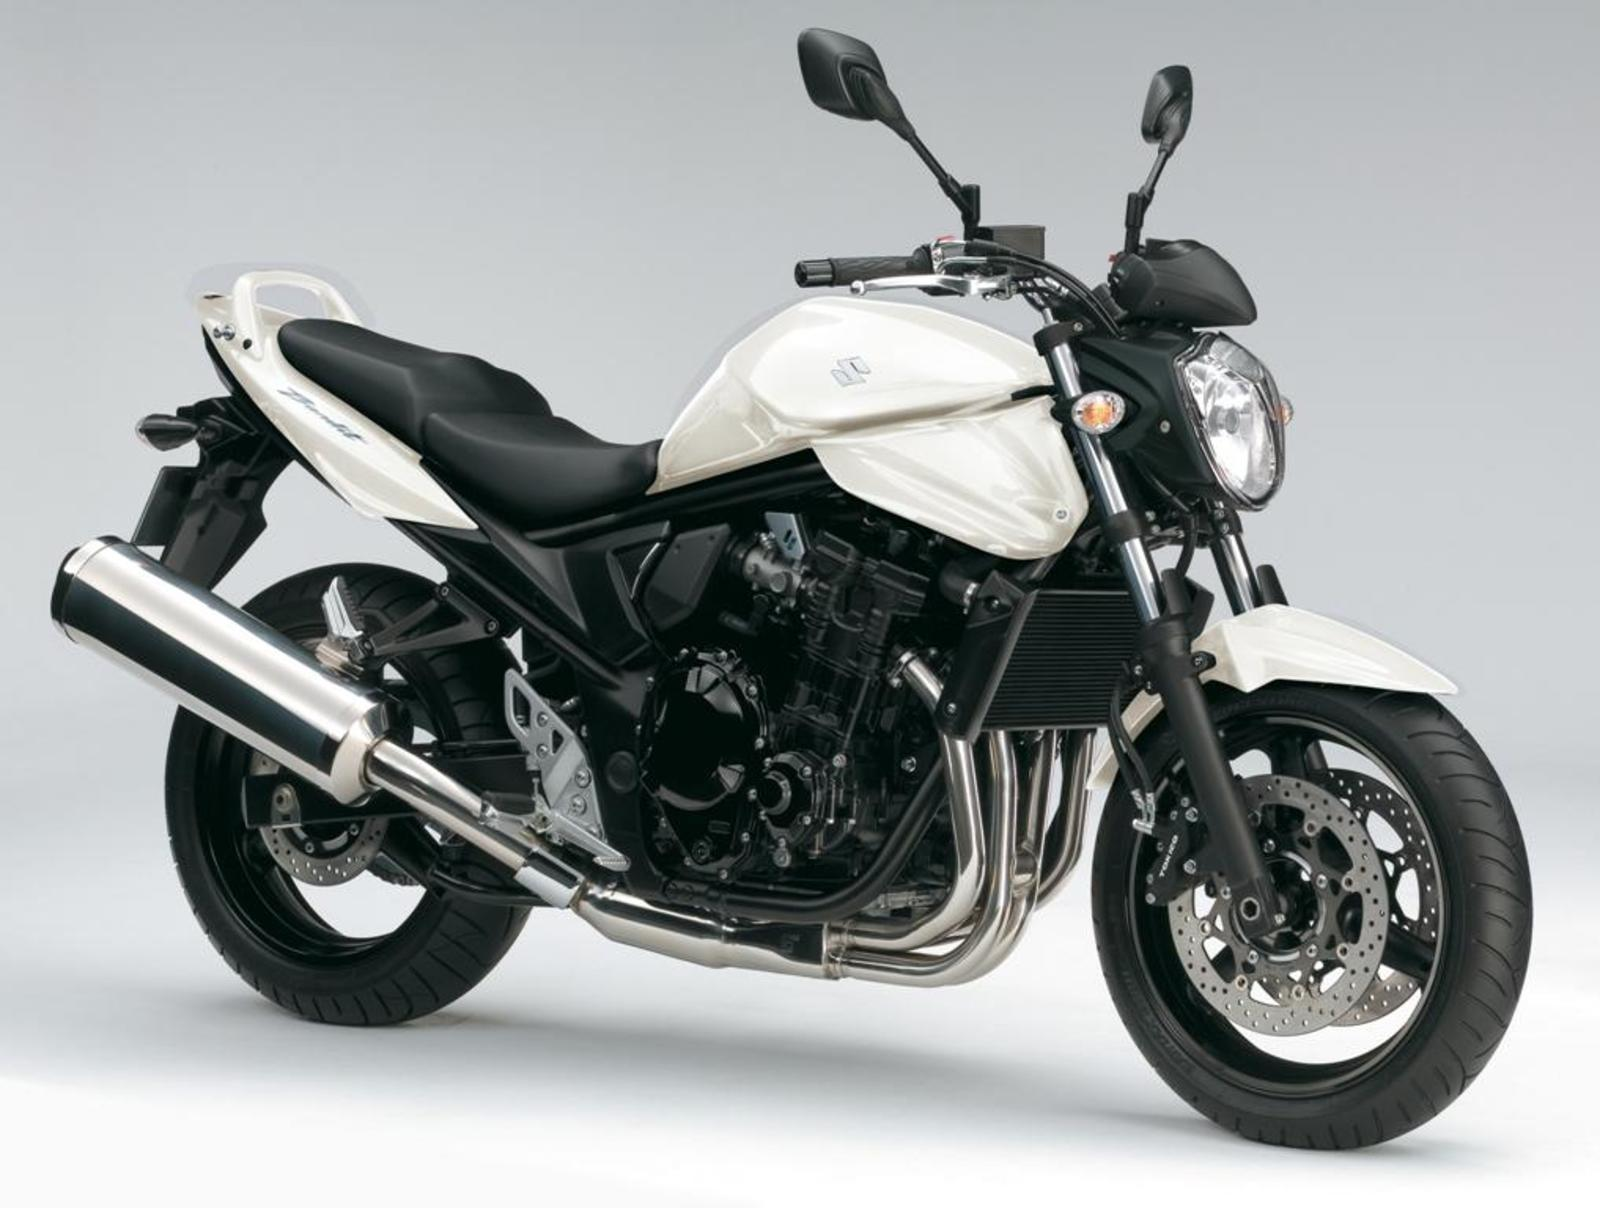 2013 suzuki bandit 650 review top speed. Black Bedroom Furniture Sets. Home Design Ideas